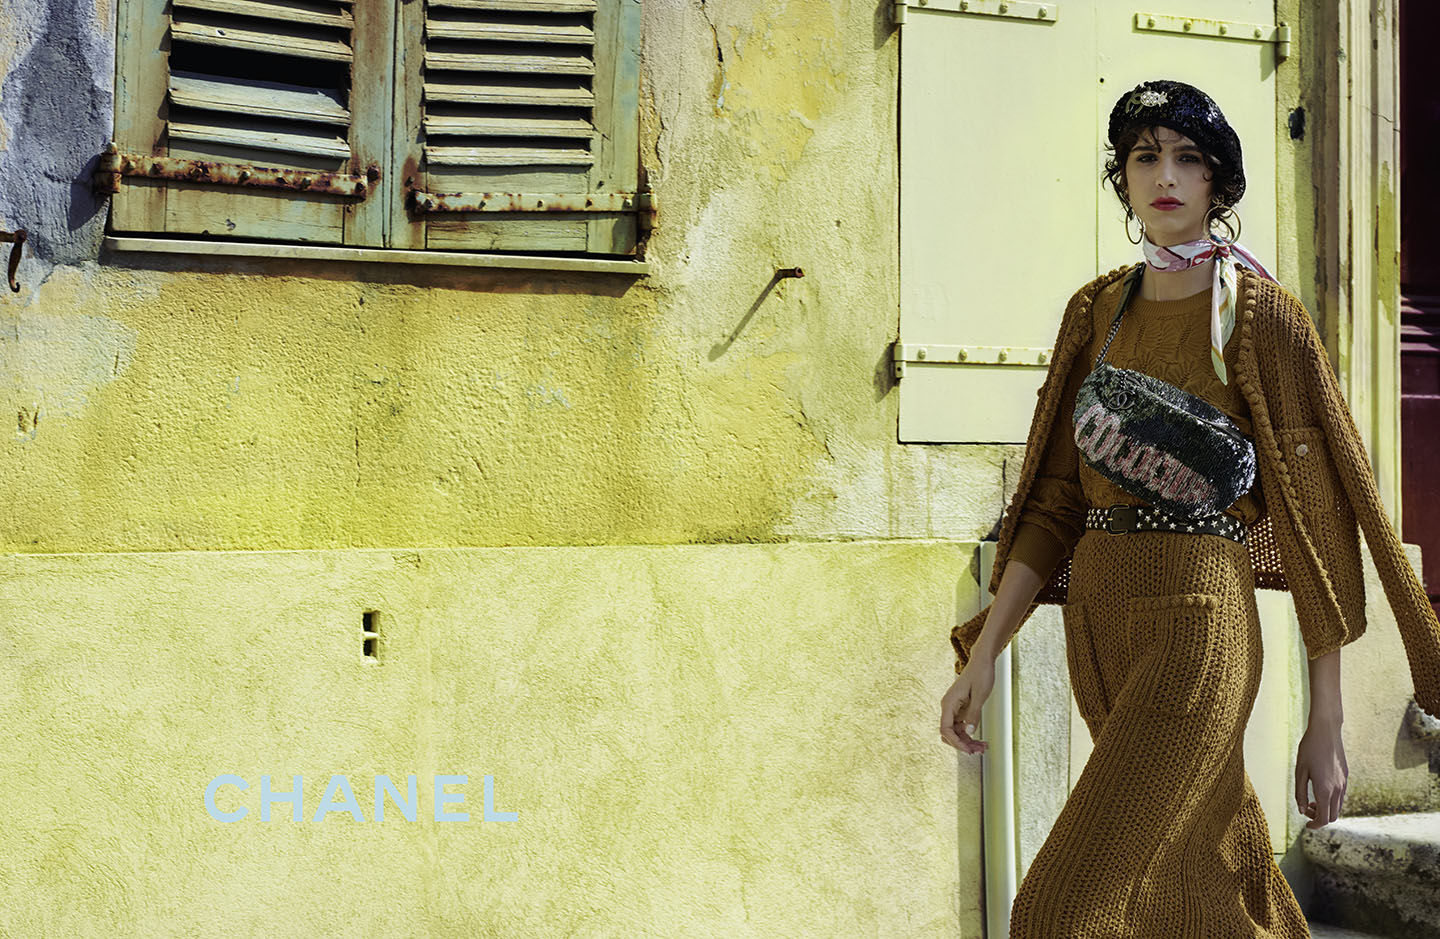 Chanel Cruise 2019 Campaign Shot In Cuba recommend